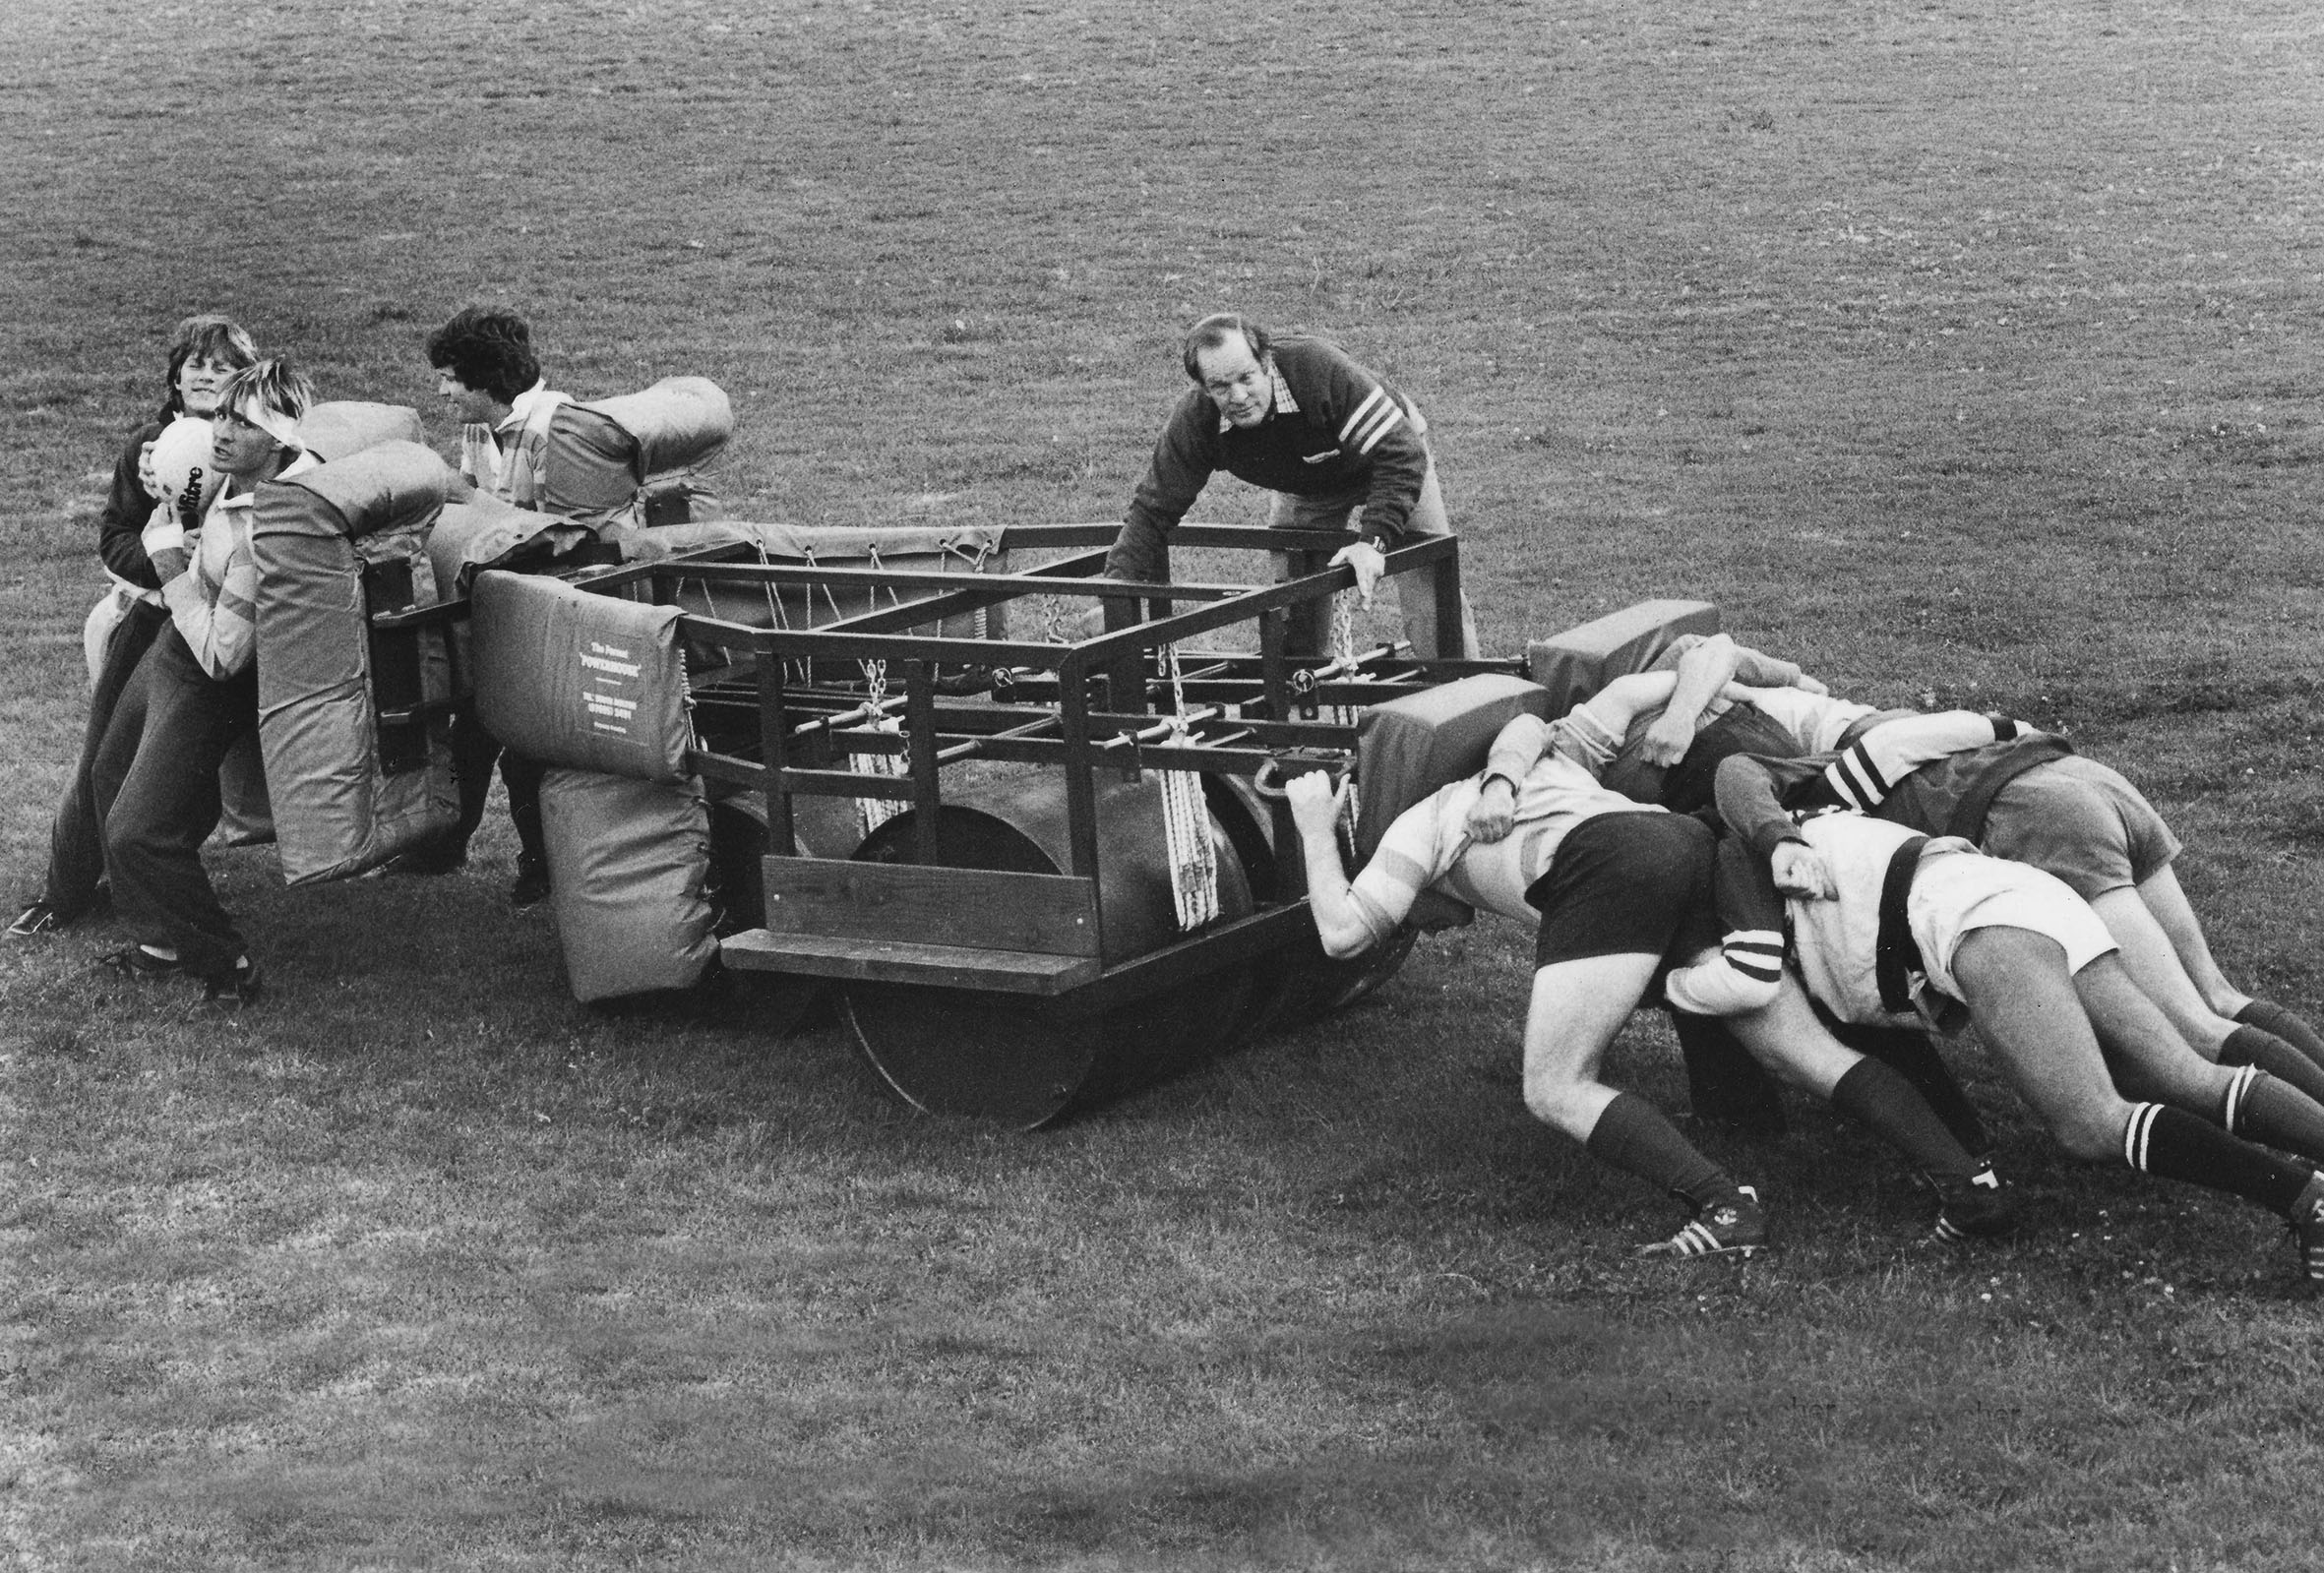 Tim Francis, inventor of the modern-day scrum machine, demonstrates the Powerhouse with the University of Cape Town in 1982